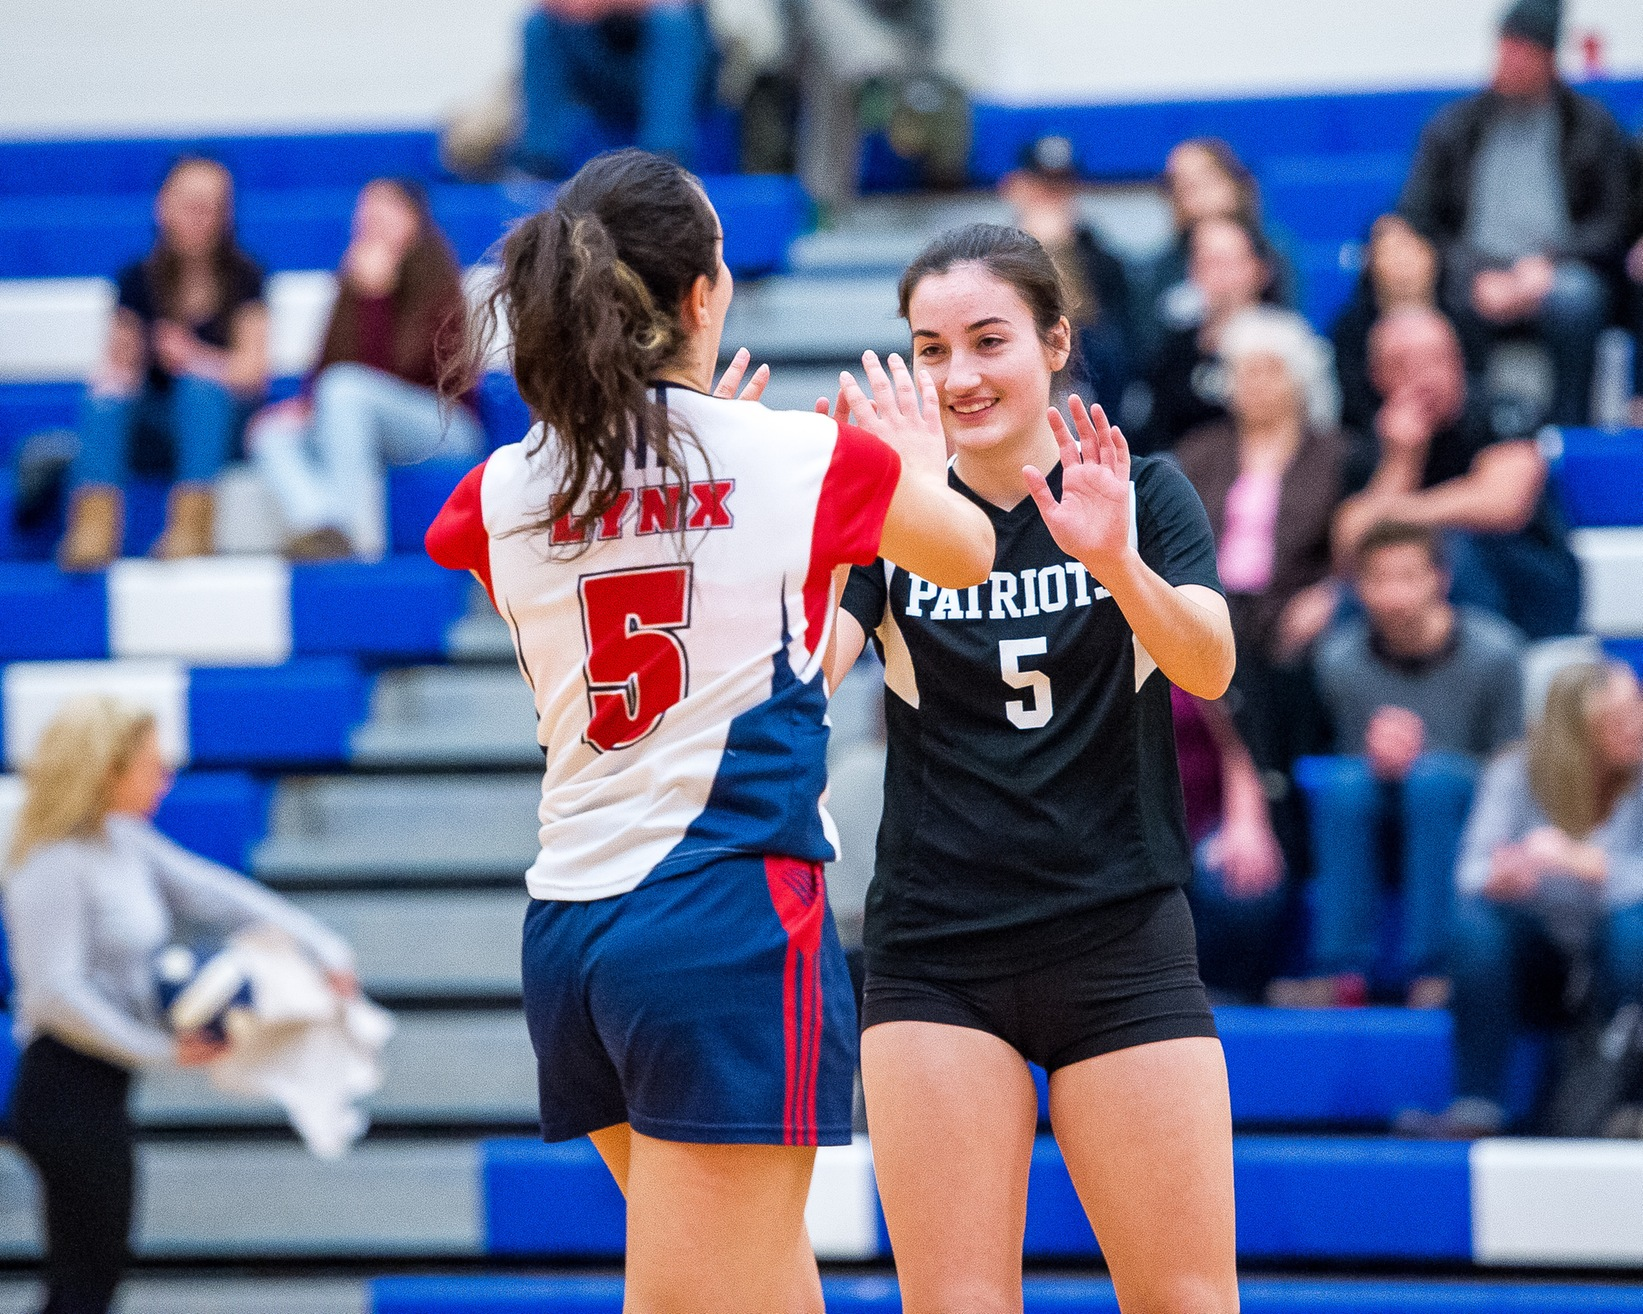 Taylor and Lafleur named MVPs of the 2018 Niagara Region Girls Volleyball Showcase